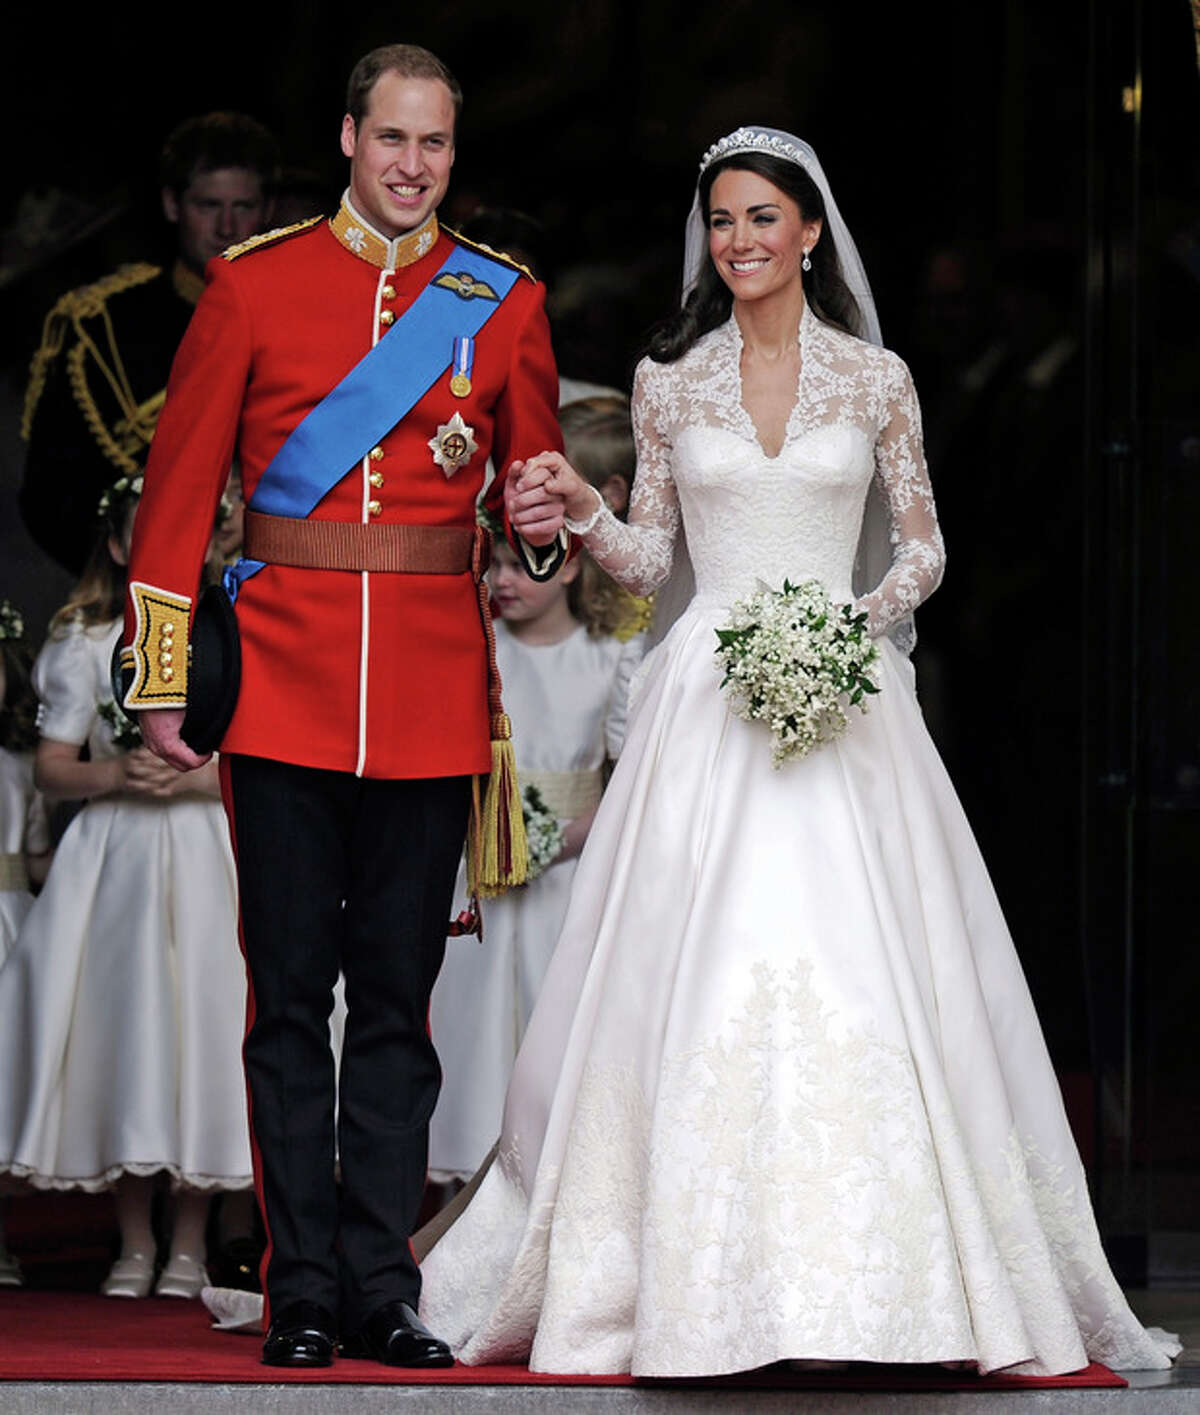 FILE - In this Friday April 29, 2011 file photo Britain's Prince William and his bride Kate, Duchess of Cambridge, leave Westminster Abbey, London, following their wedding. The Duke and Duchess of Cambridge are very pleased to announce that the Duchess of Cambridge is expecting a baby, St James's Palace officially announced Monday Dec. 3, 2012. (AP Photo/Martin Meissner, File)